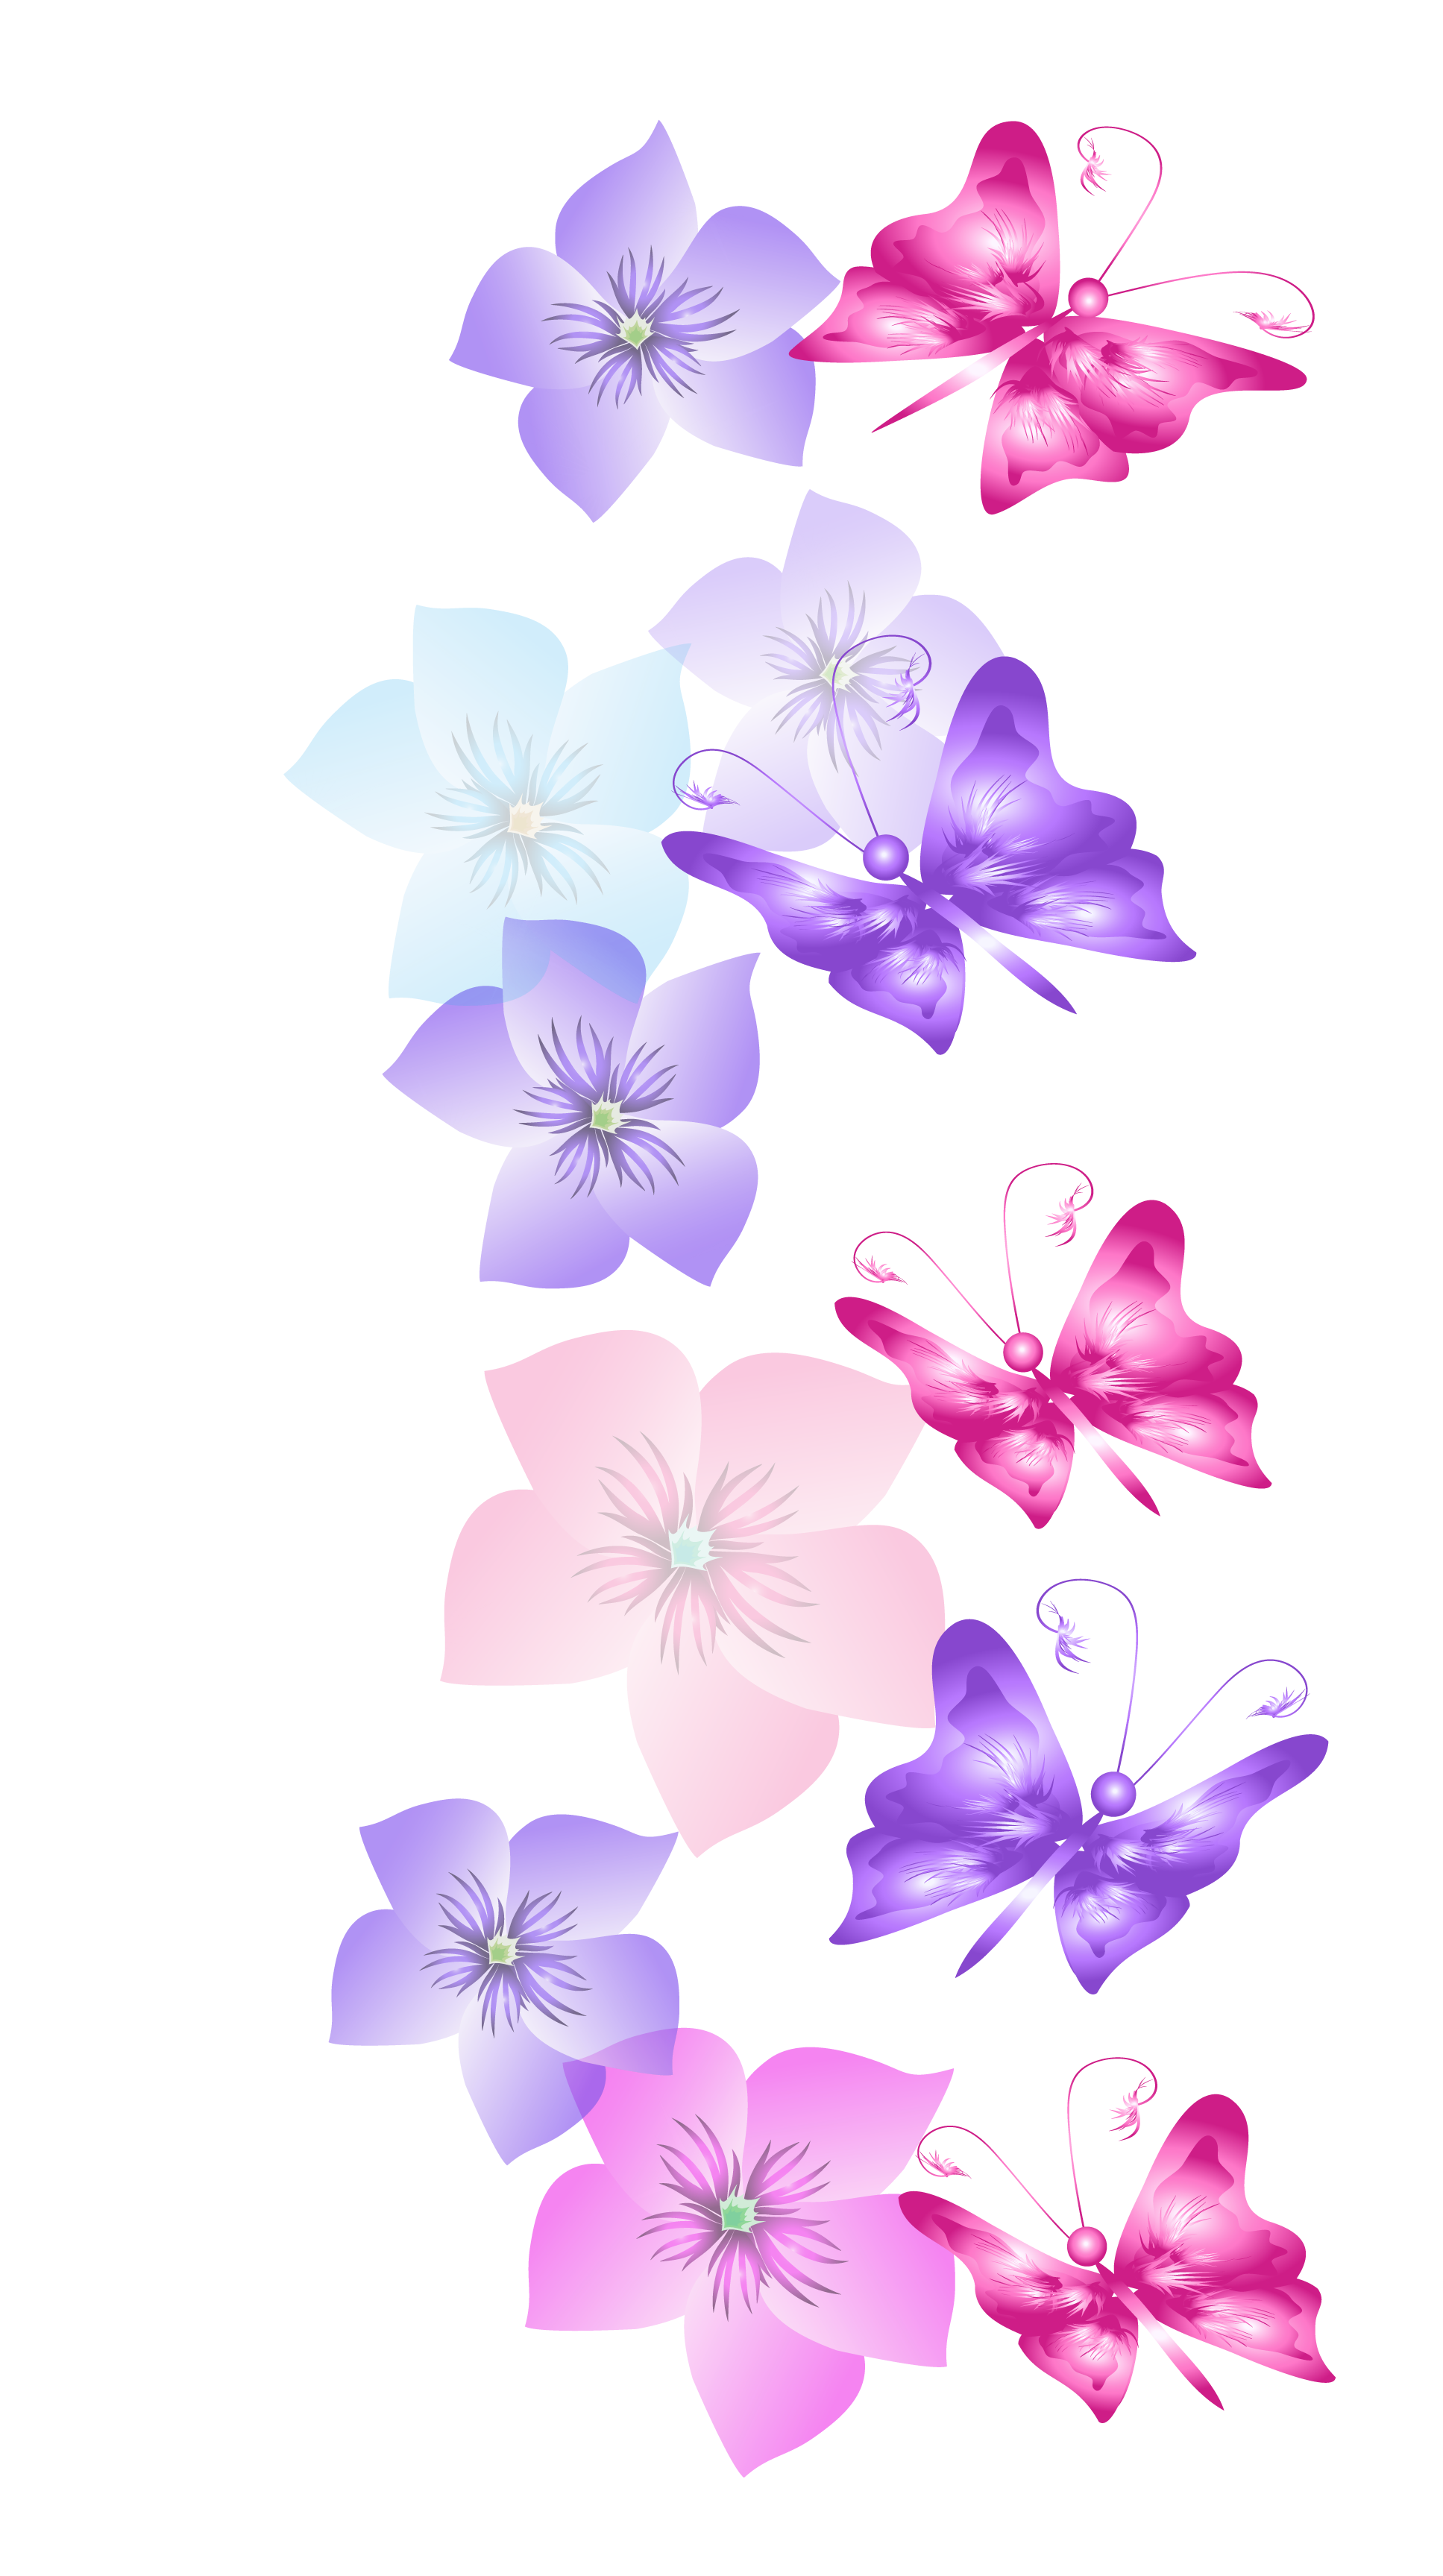 Butterfly border png. Butterflies and flowers decoration